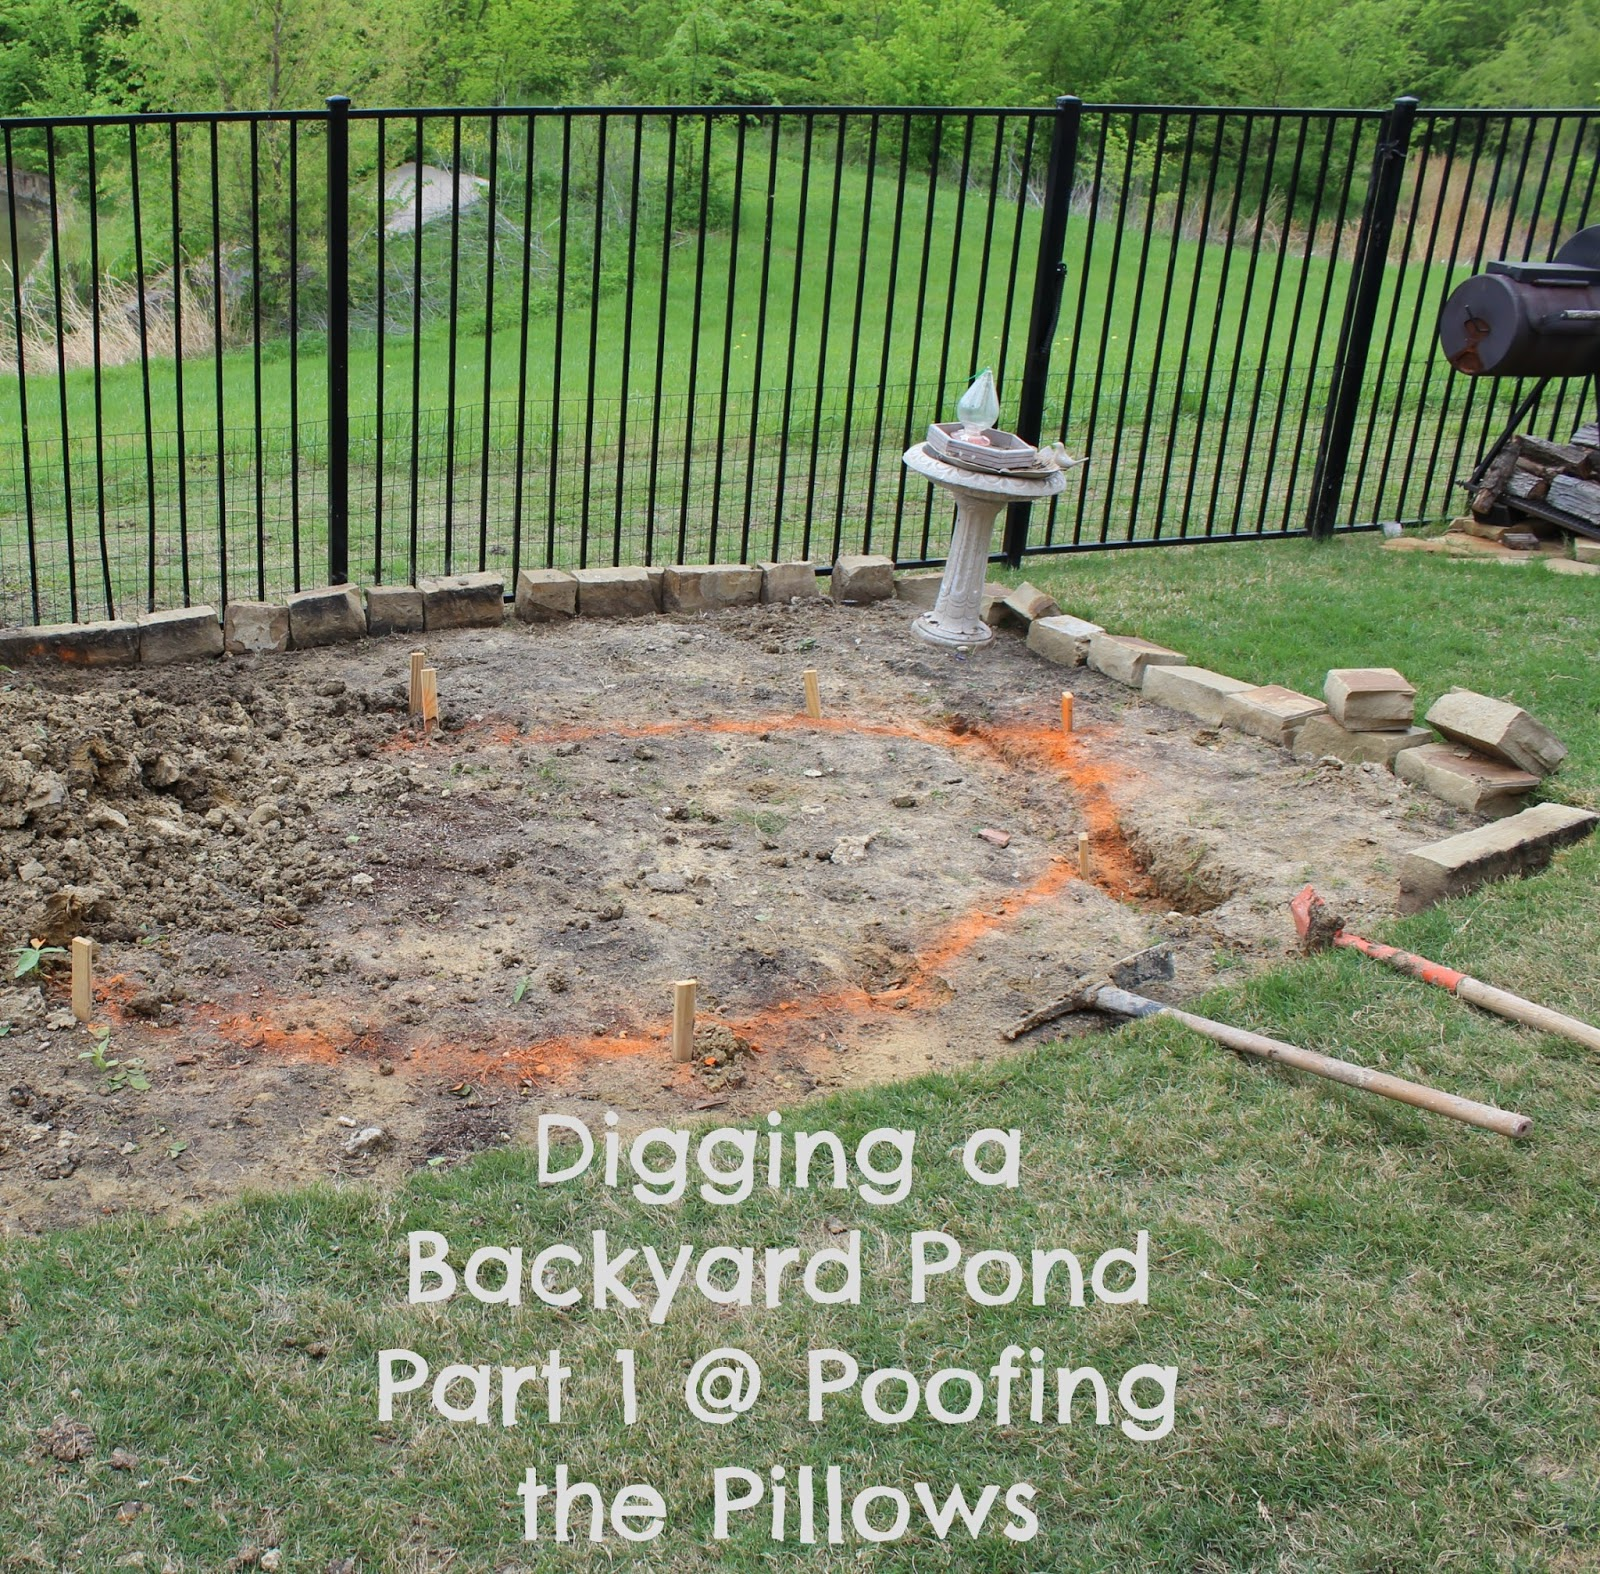 building a backyard pond part 2 poofing the pillows